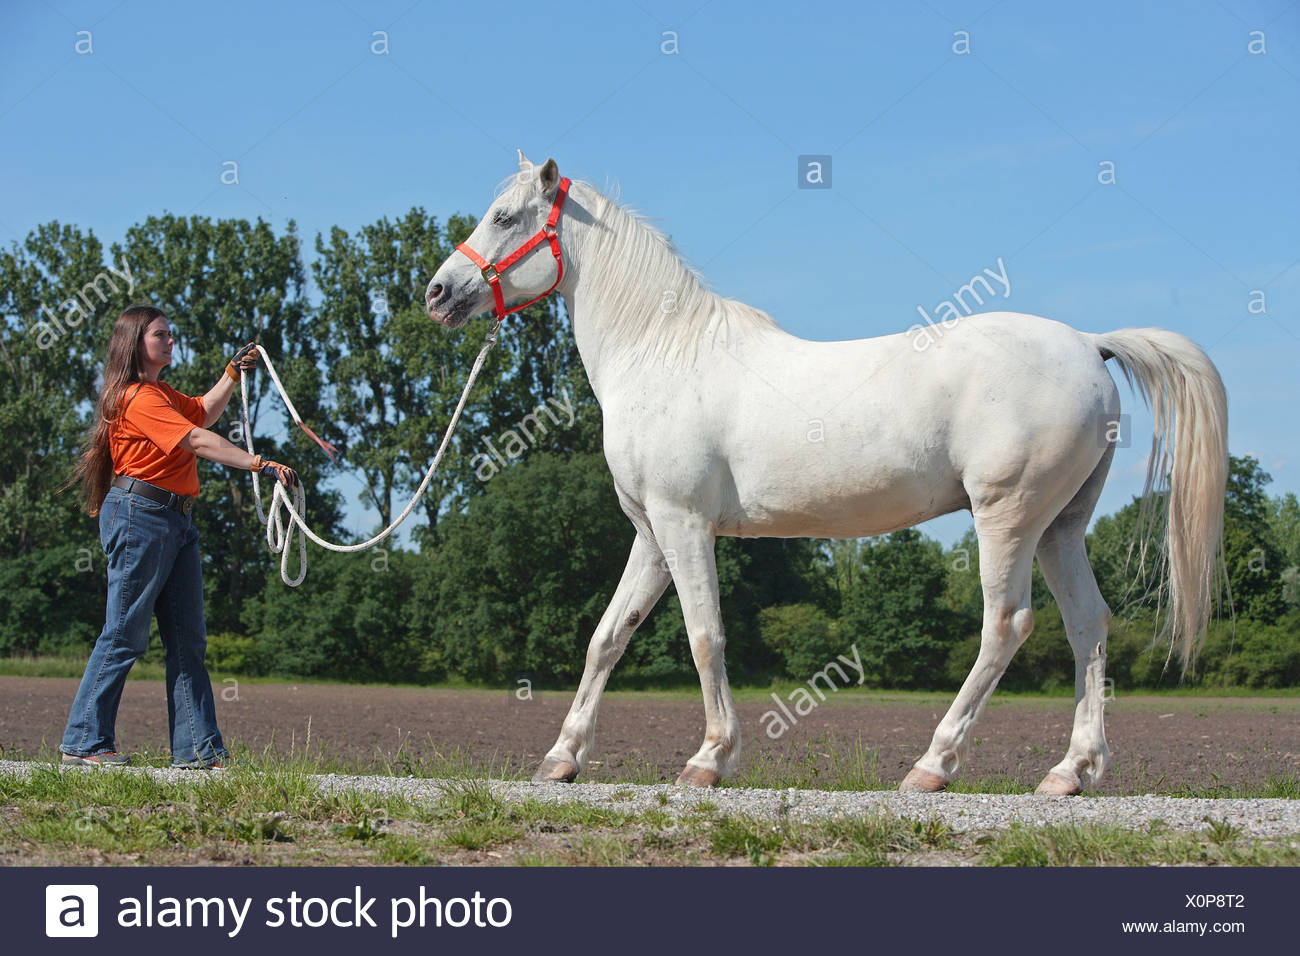 Tiger Horse with woman - rein-back - Stock Image